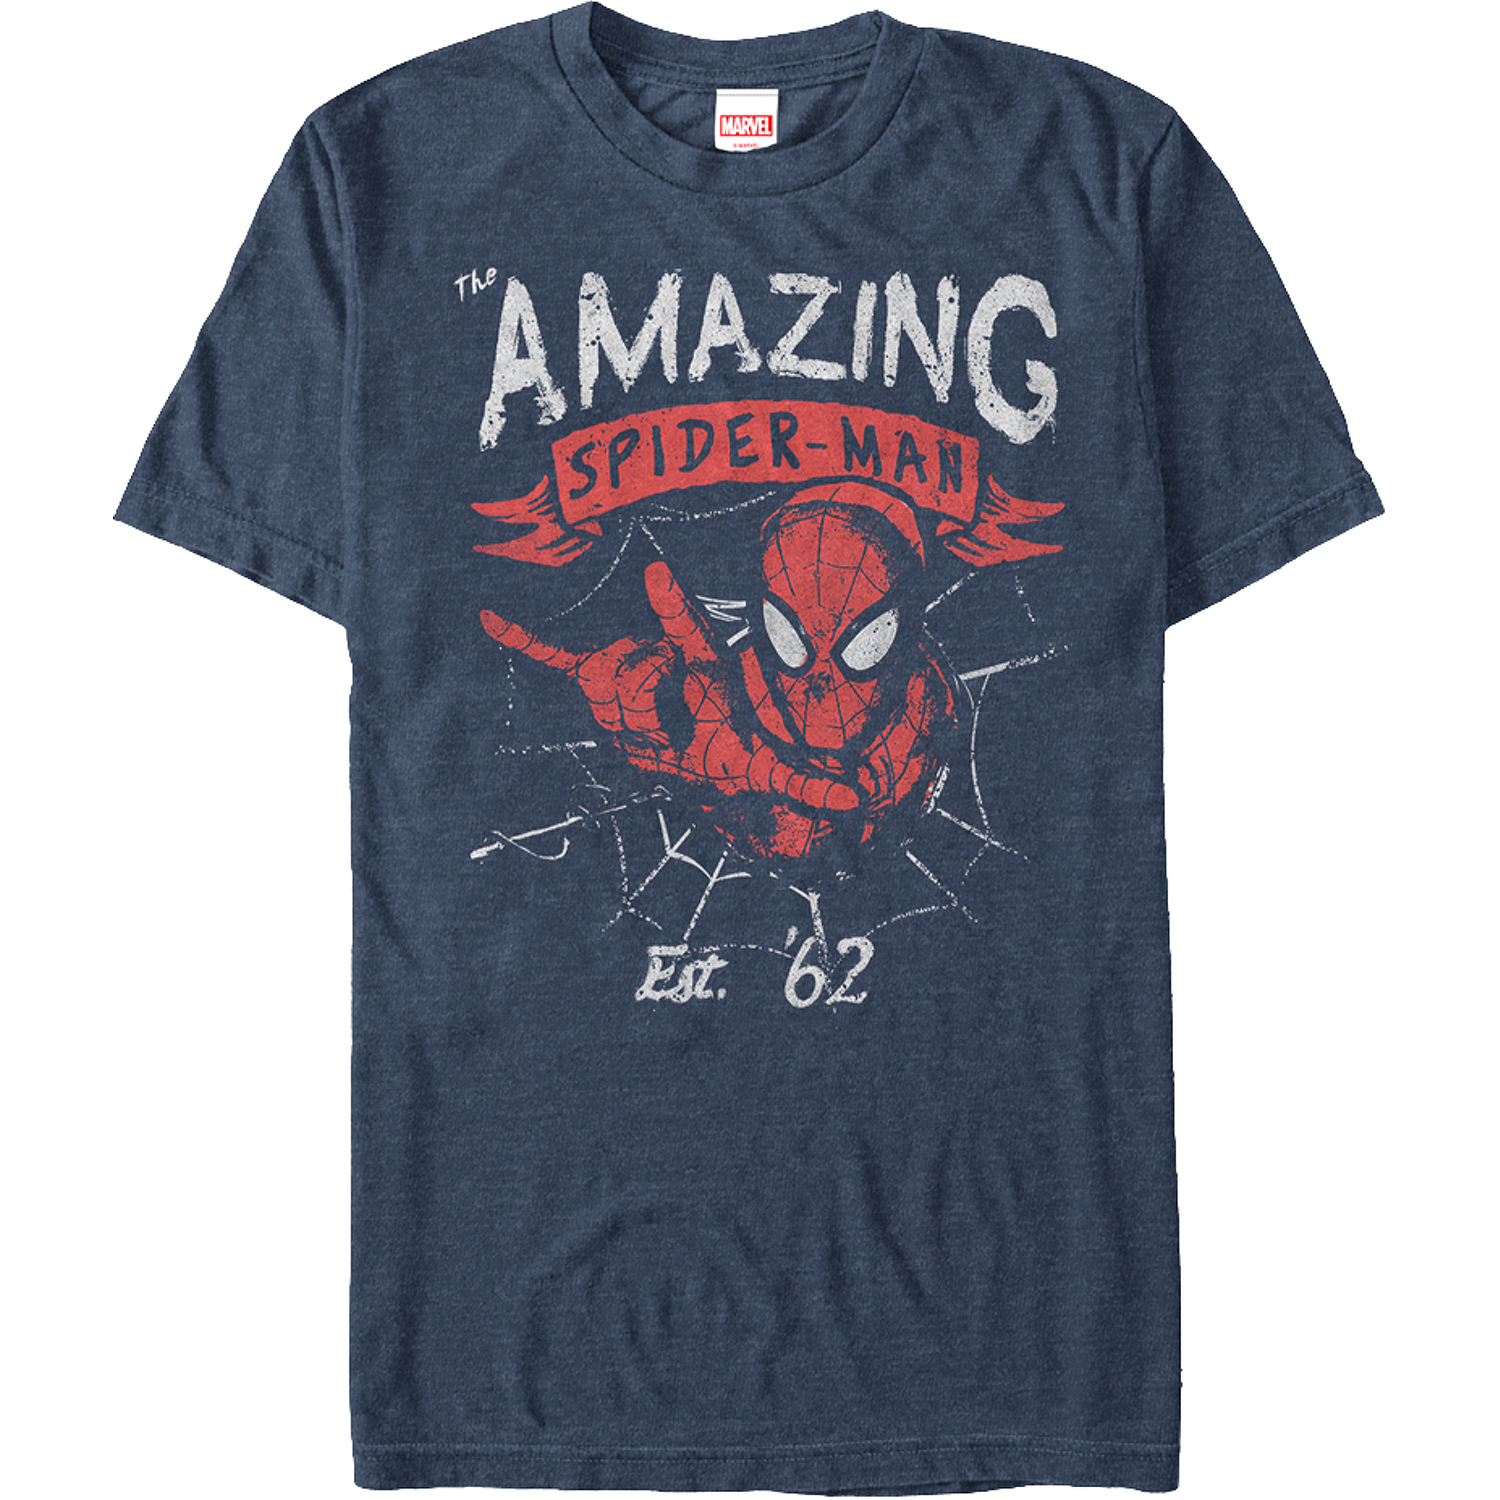 air-jordan-1-origin-story-spiderman-sneaker-tee-shirt-4